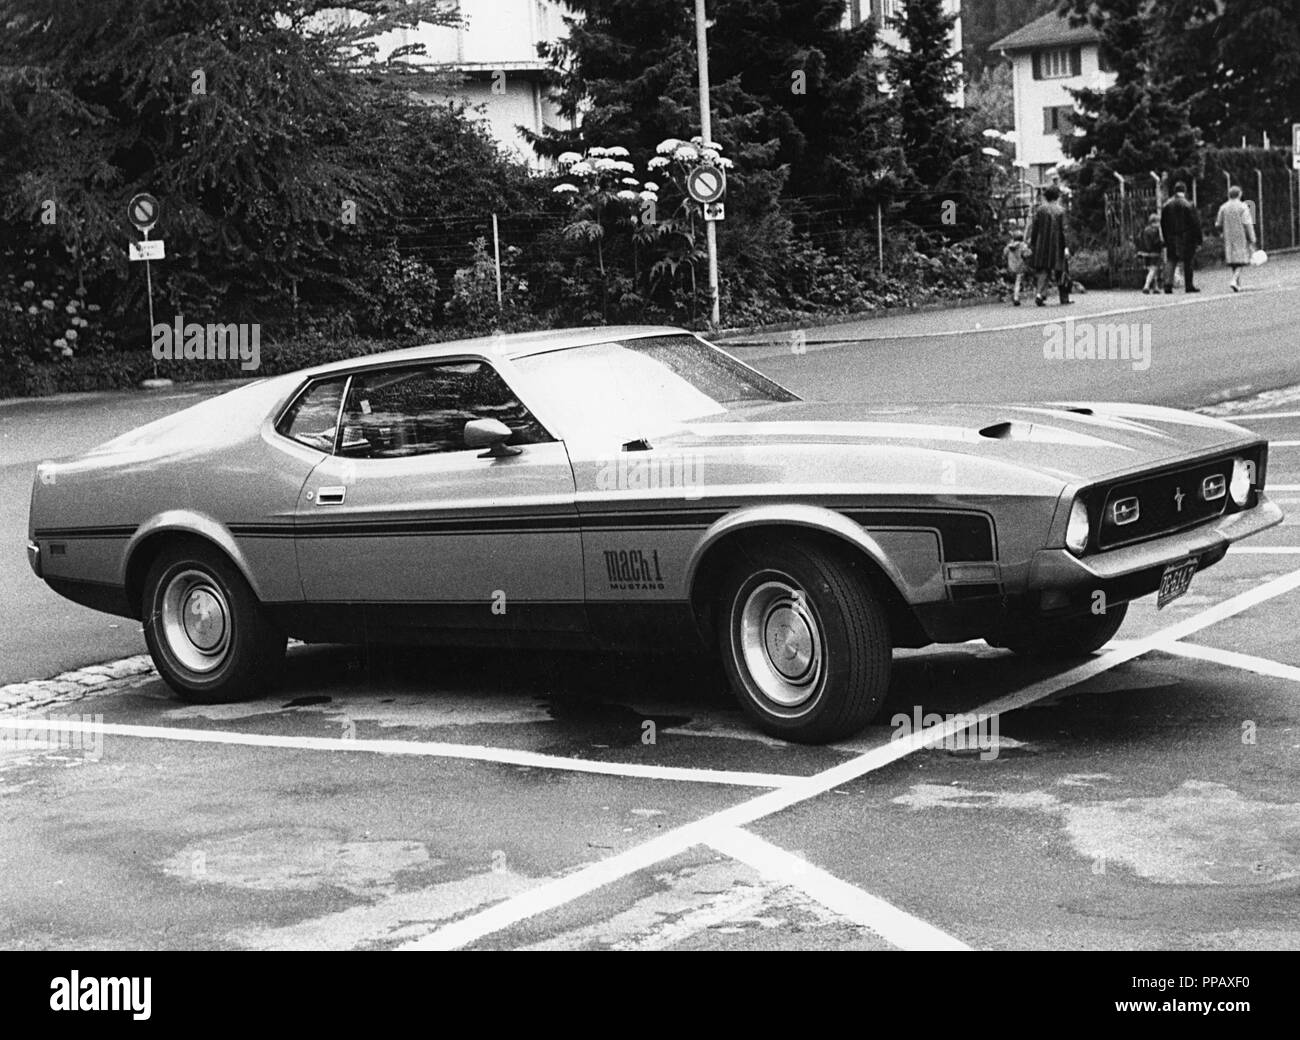 1972 ford mustang mach 1 stock image